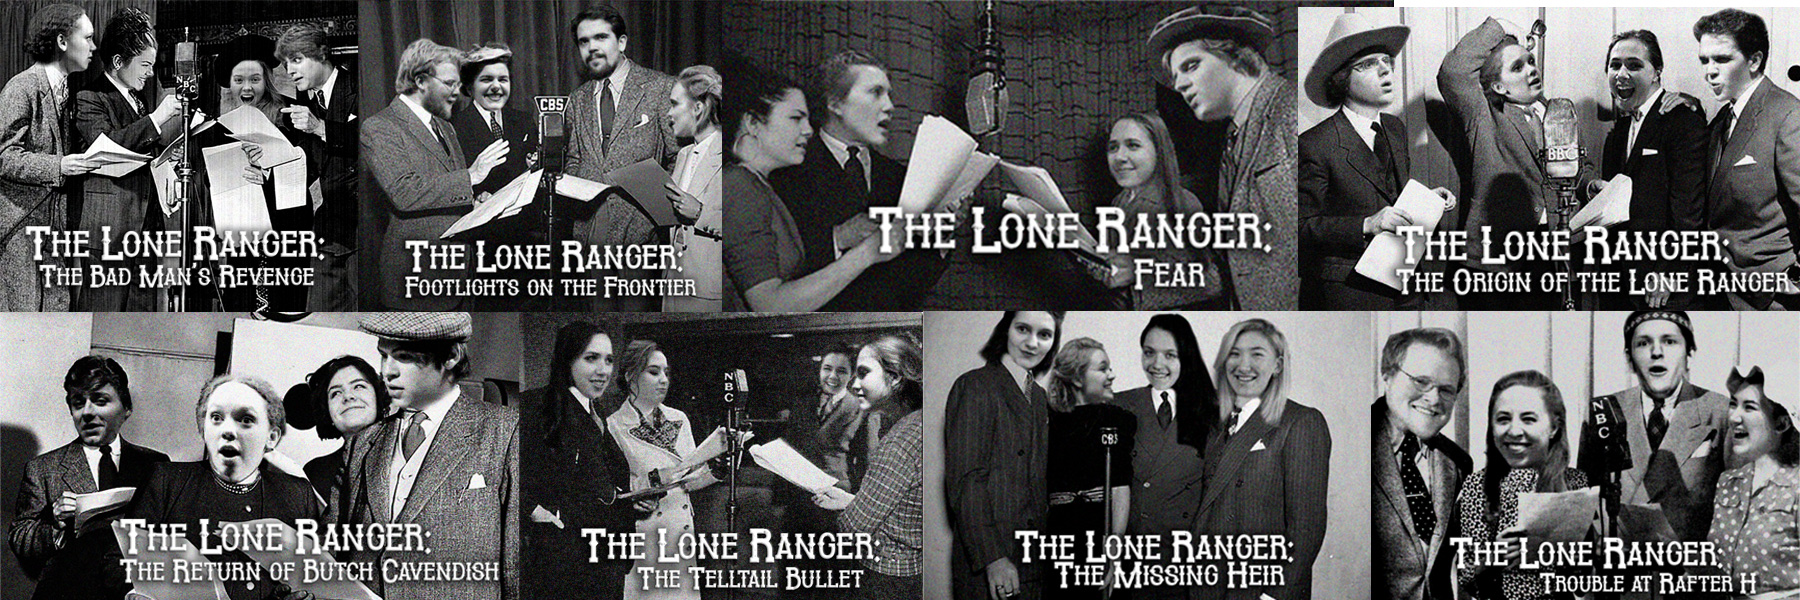 lone ranger promotion photos with students for different episodes